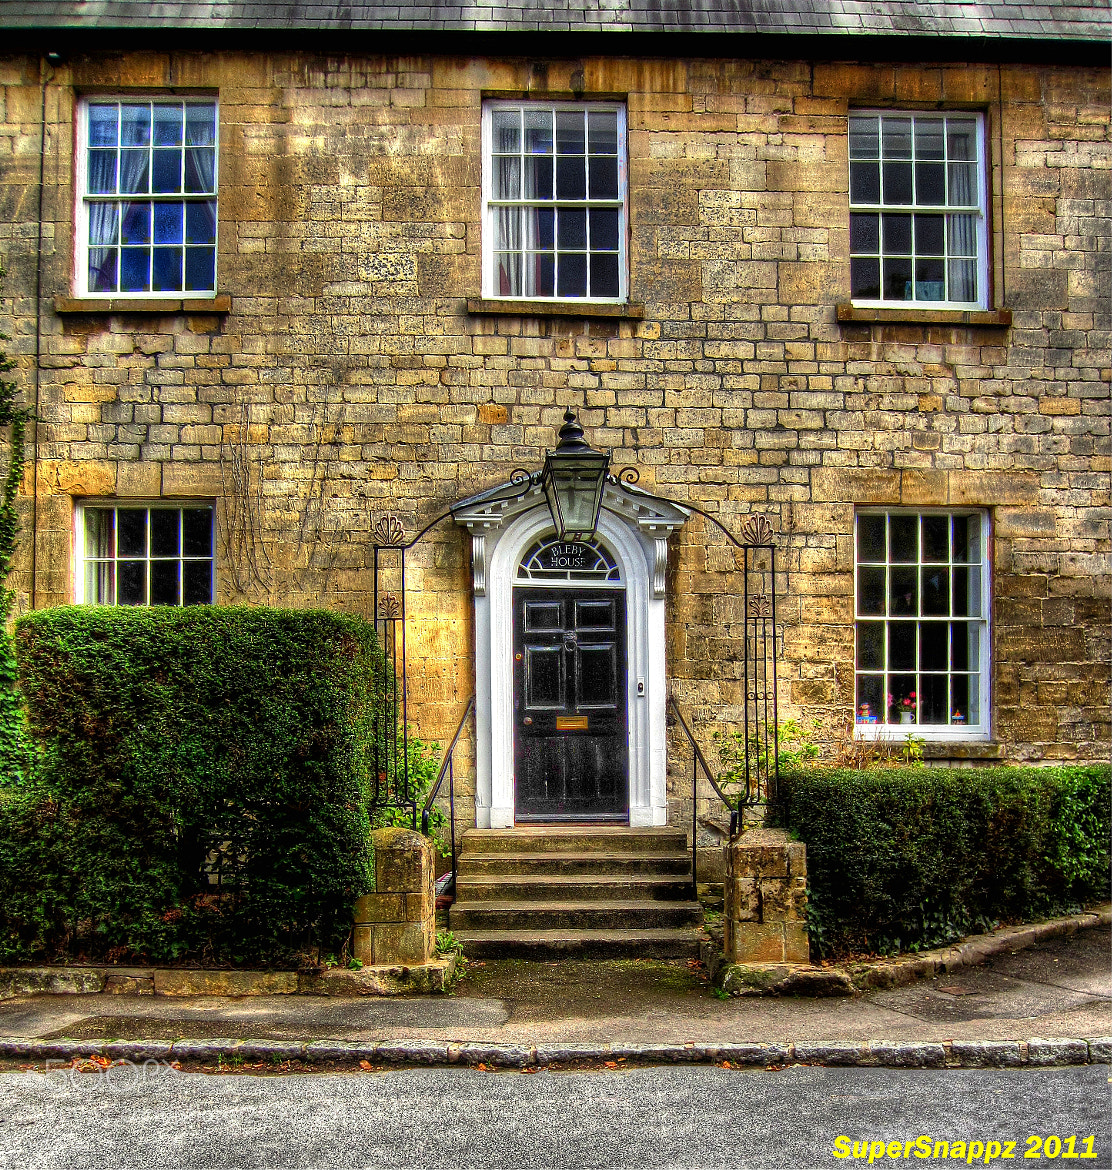 Photograph Bleby House by Super Snappz on 500px